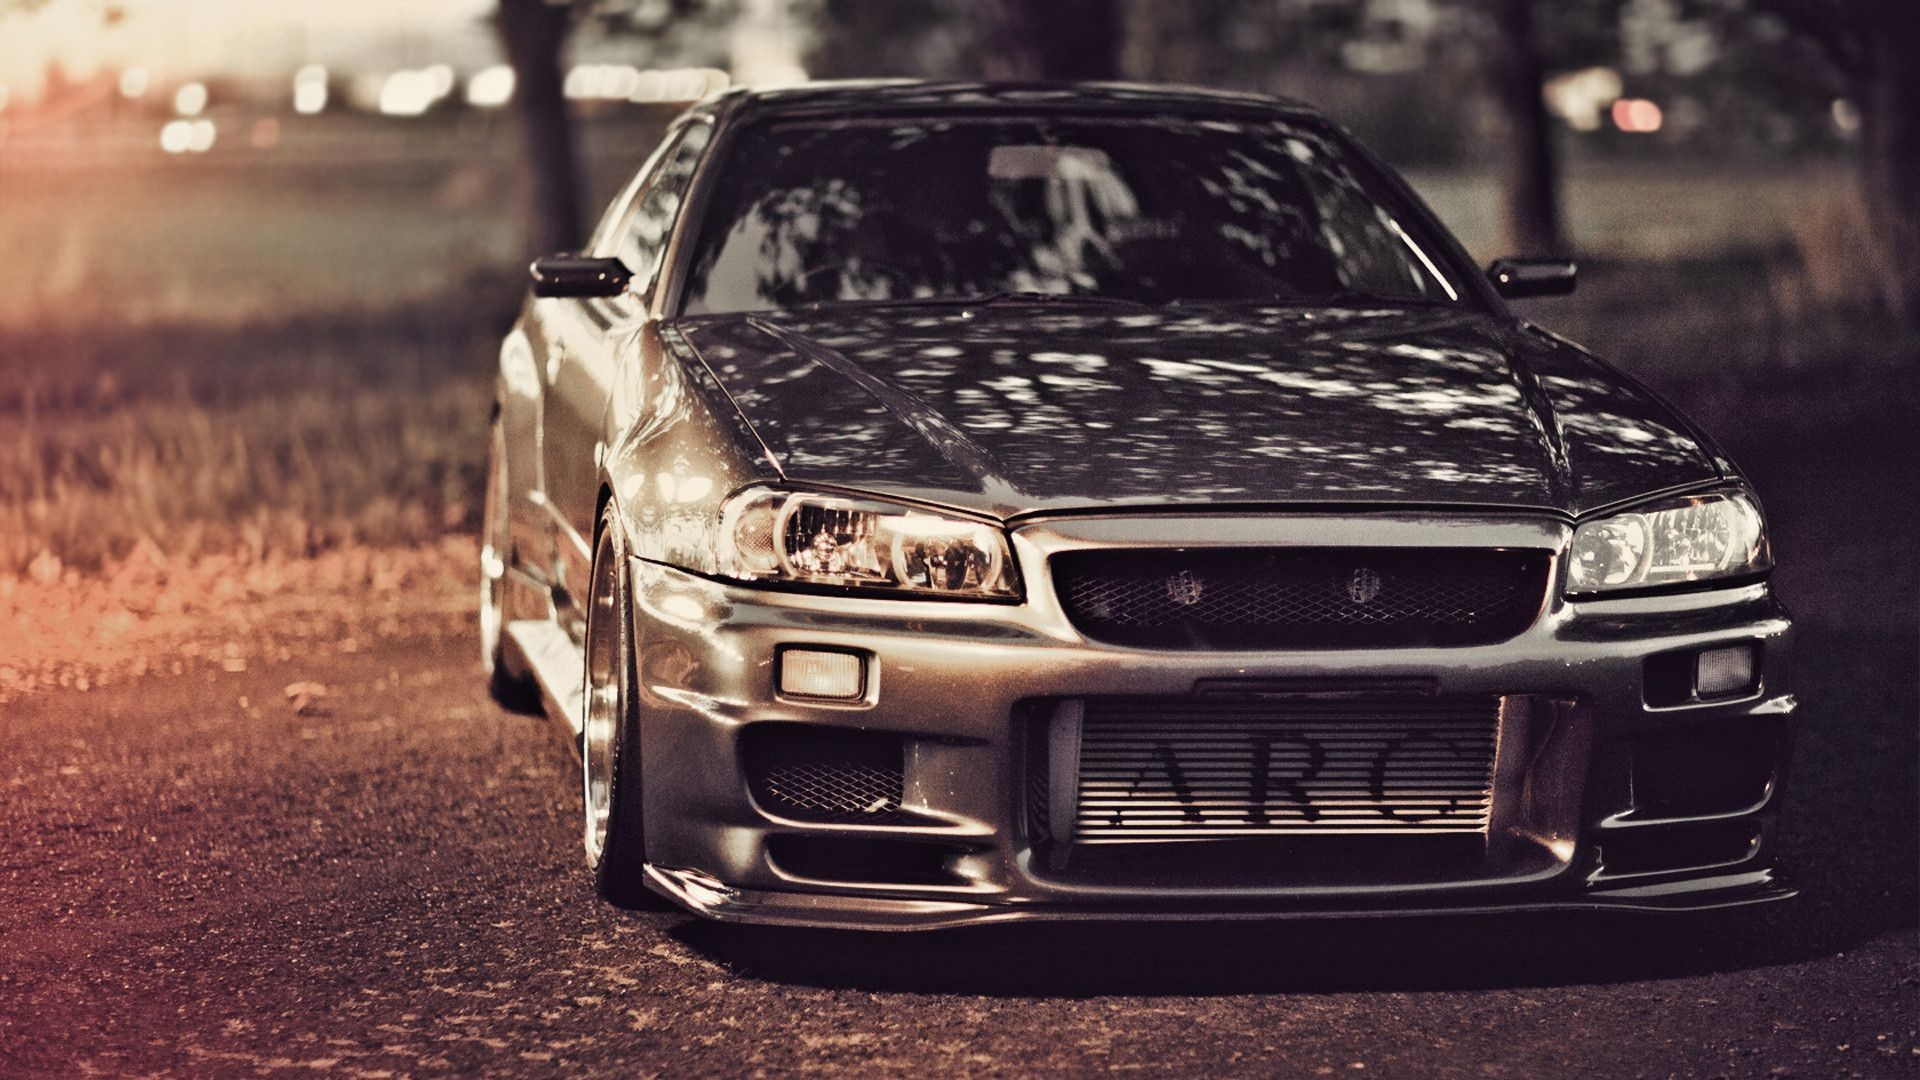 1920x1080 Nissan Skyline GTR R34 Wallpapers (51 Wallpapers)